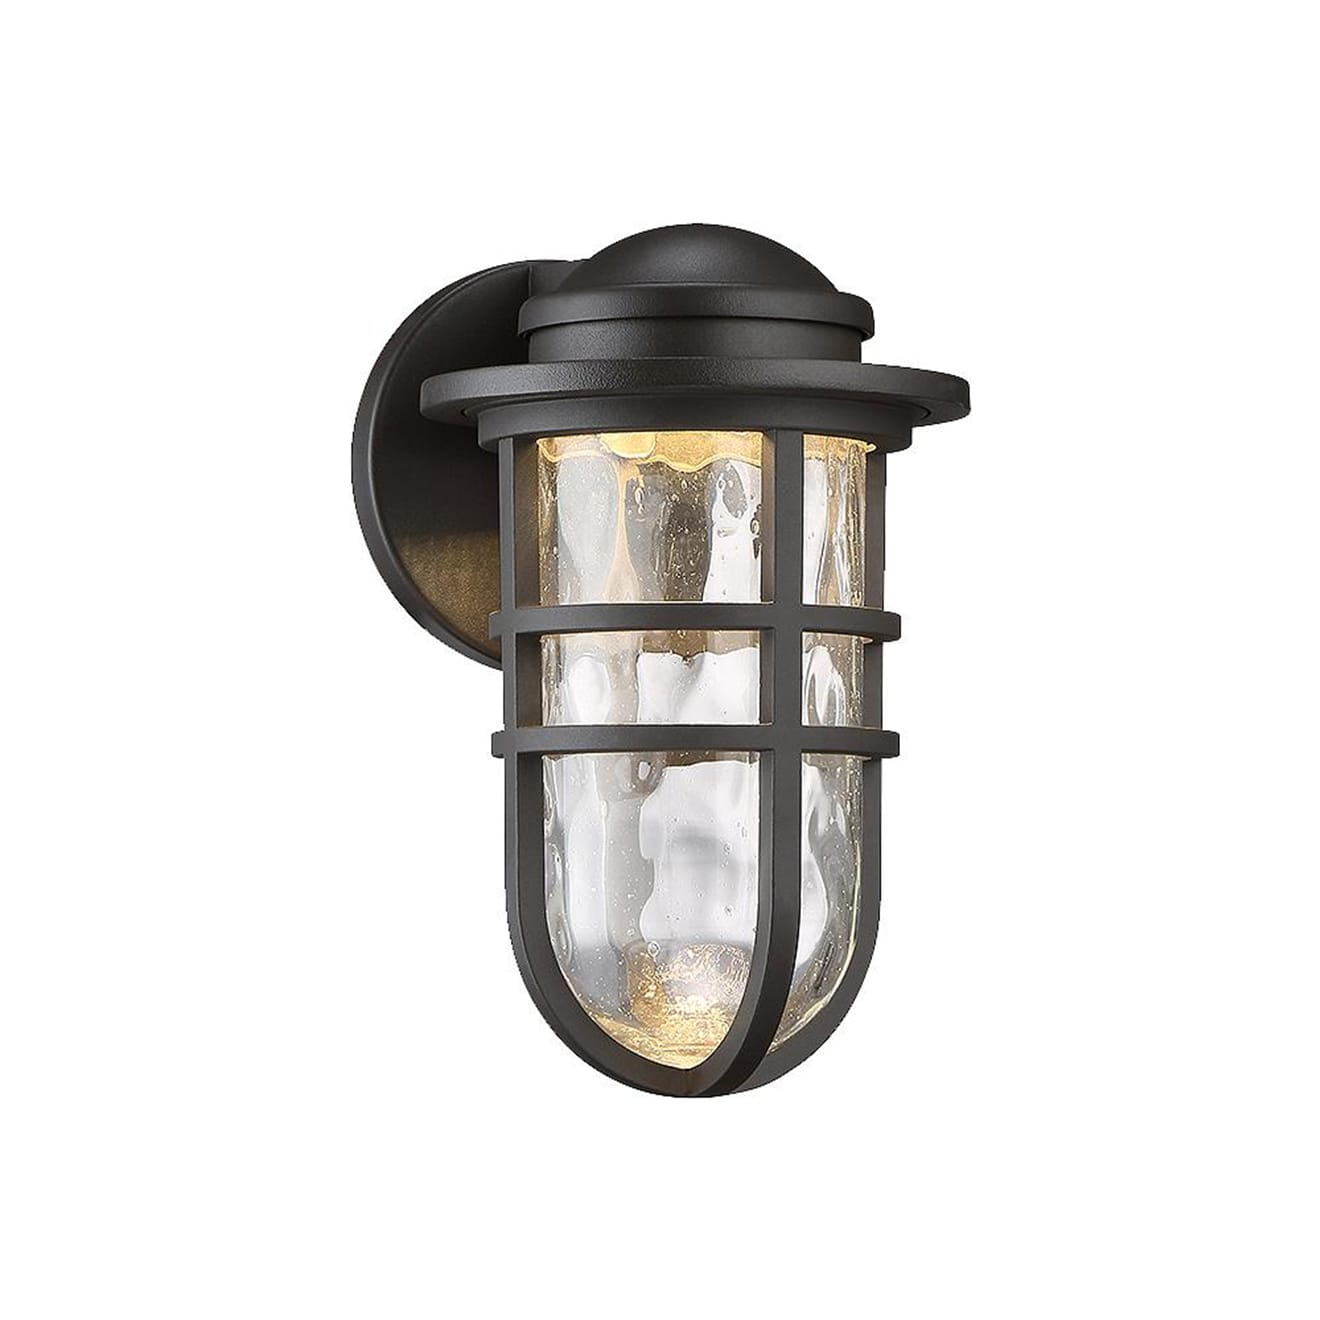 Steampunk Indoor/Outdoor Wall Sconce by dweLED